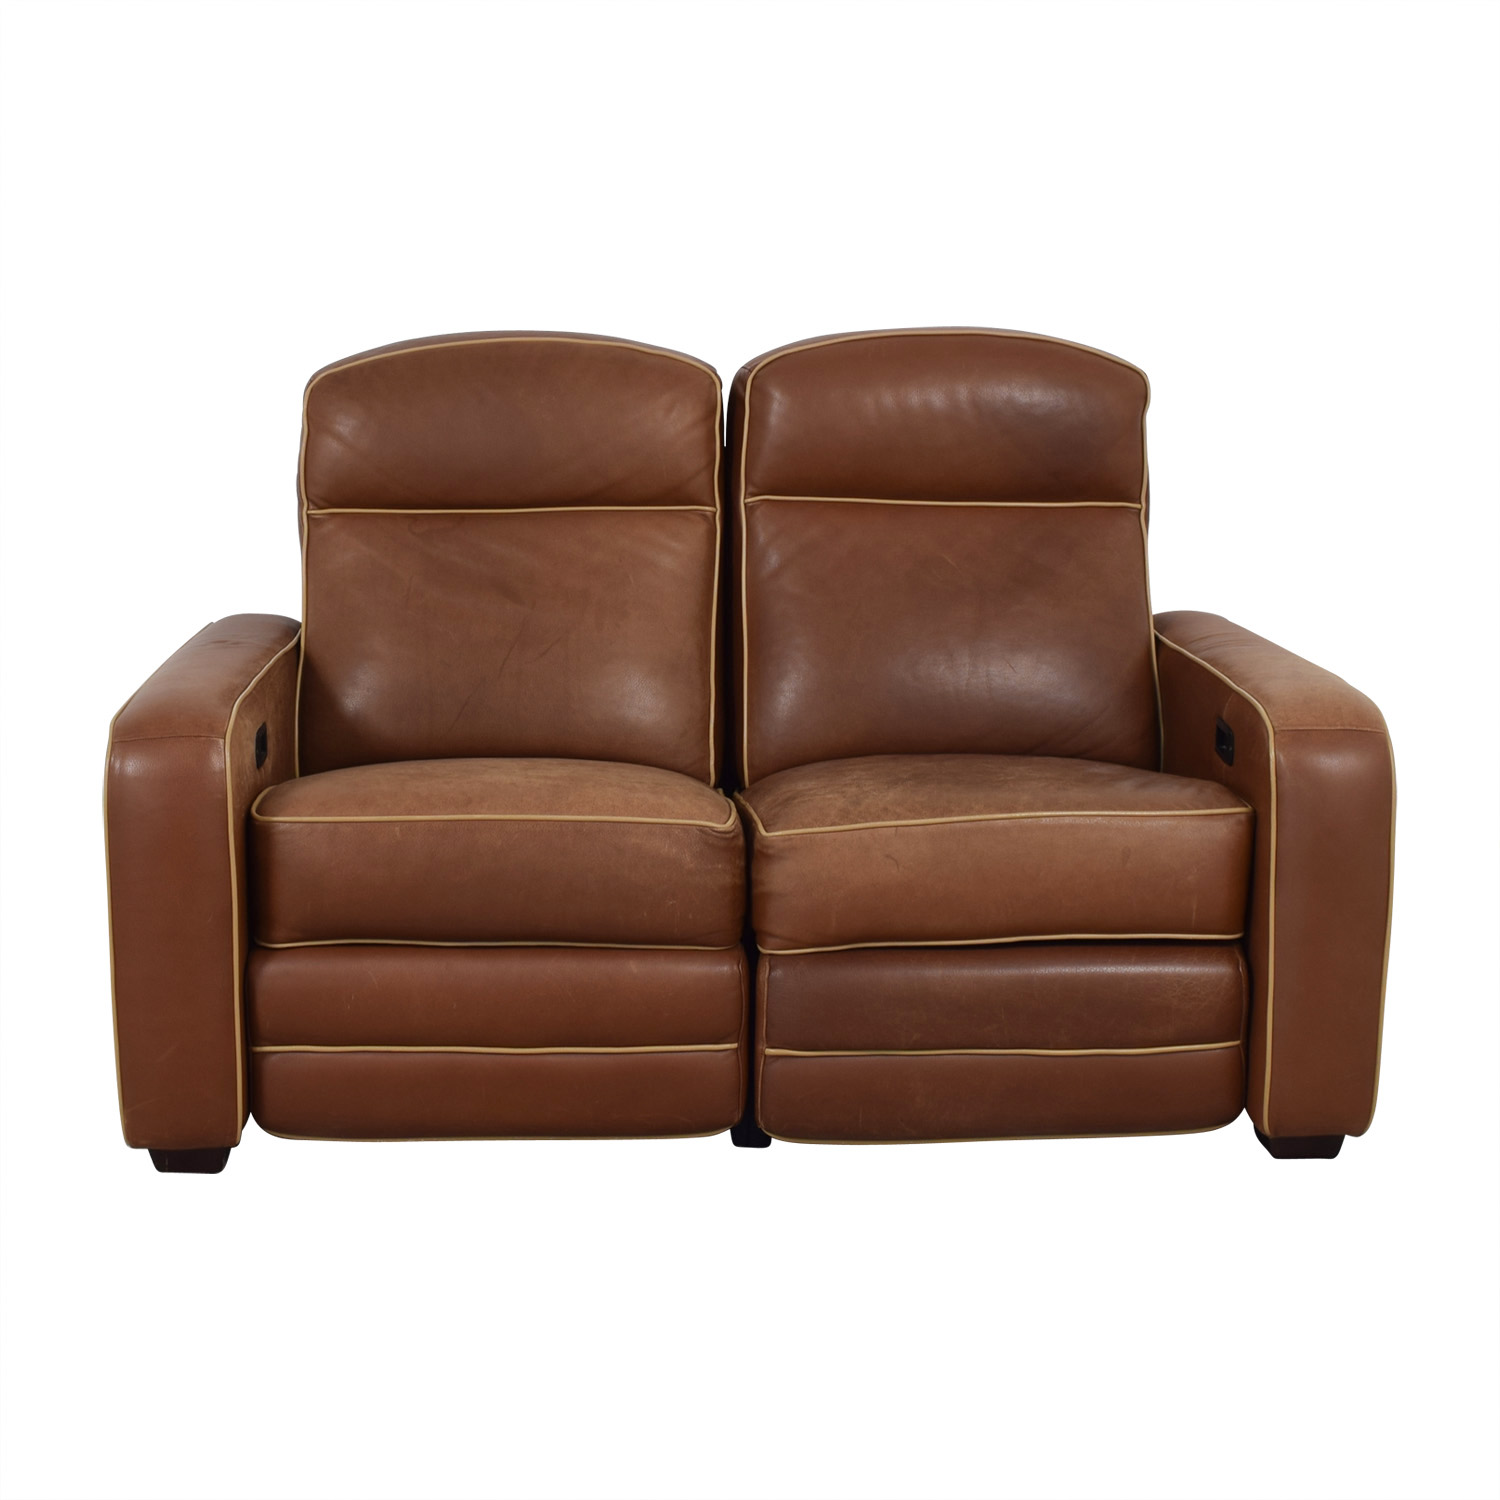 Leggett & Platt Leggett & Platt Custom Brown Loveseat Recliner on sale